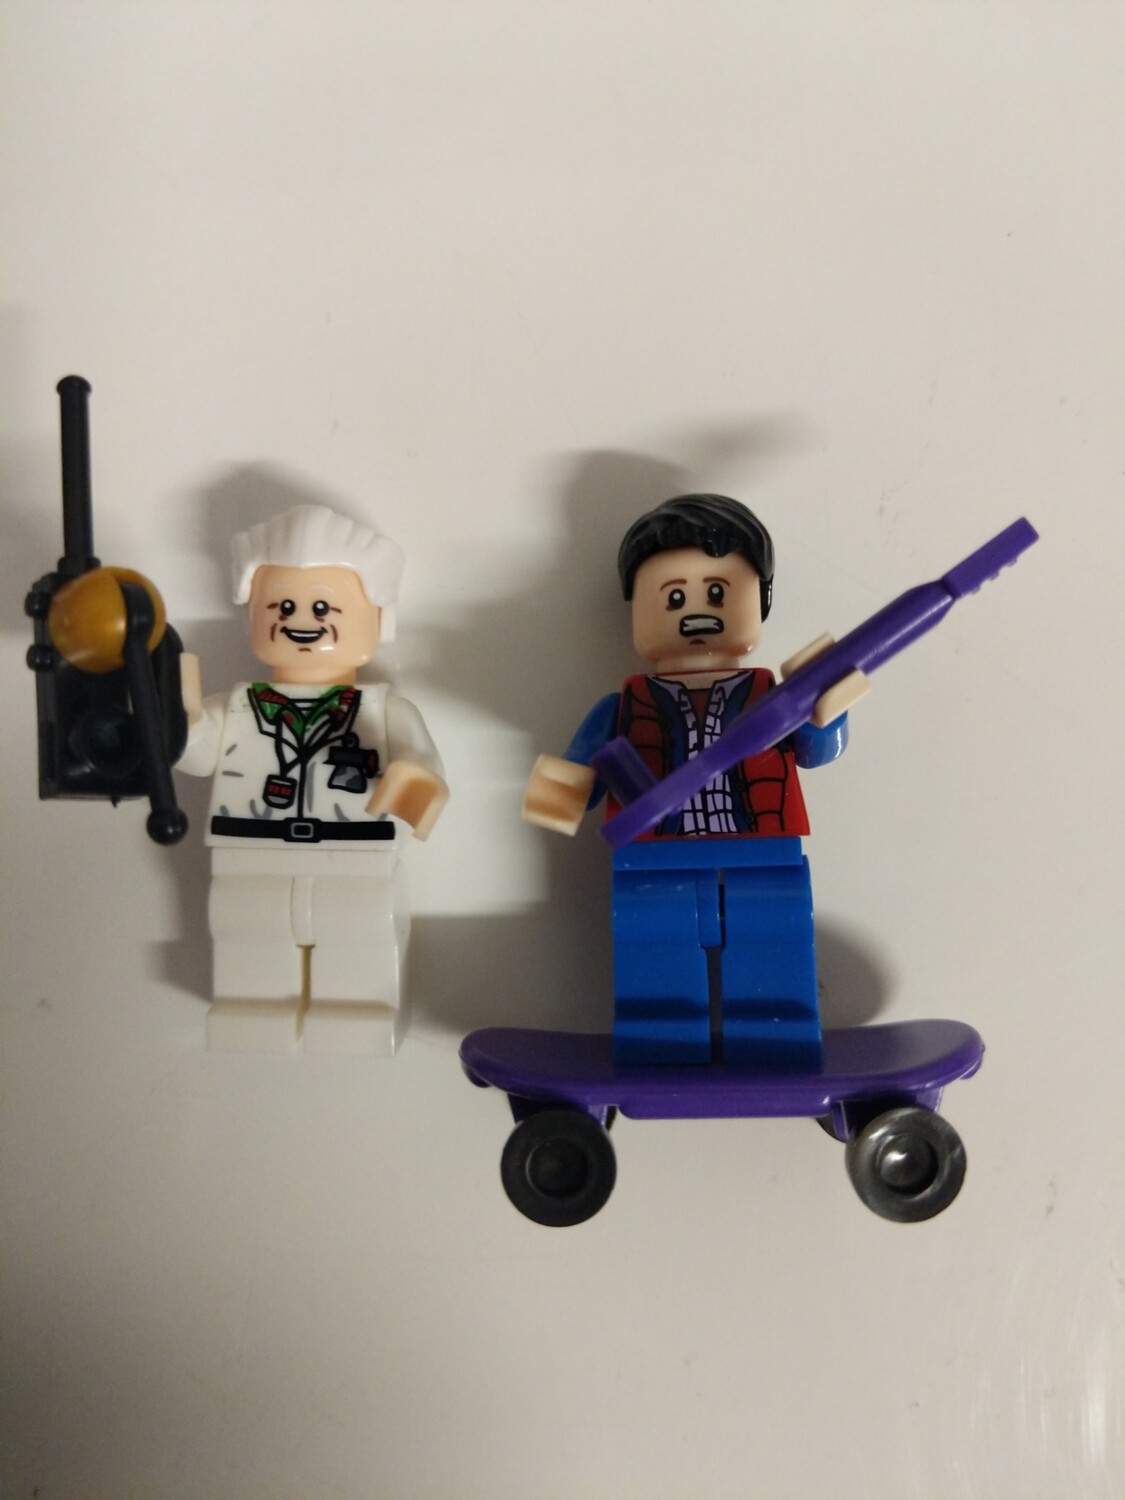 Lego Minifigure Back to the future- Dr Emmett and Marty Mcfly